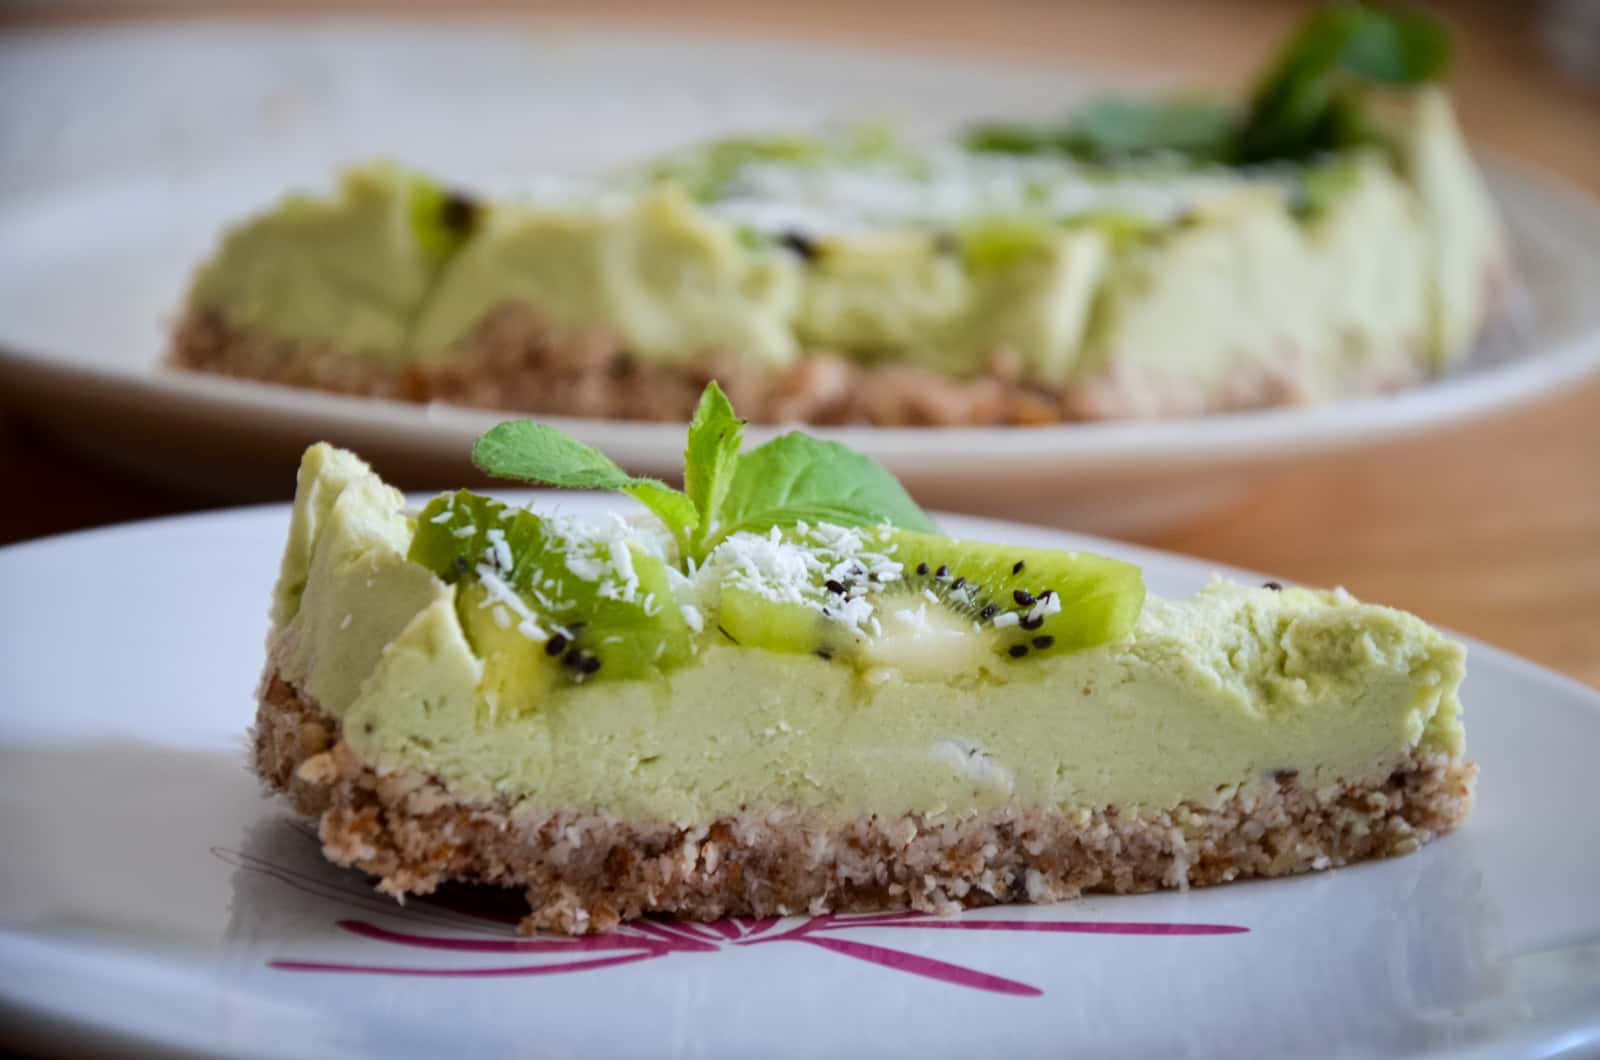 Piece of raw avocado lemon cake with kiwi